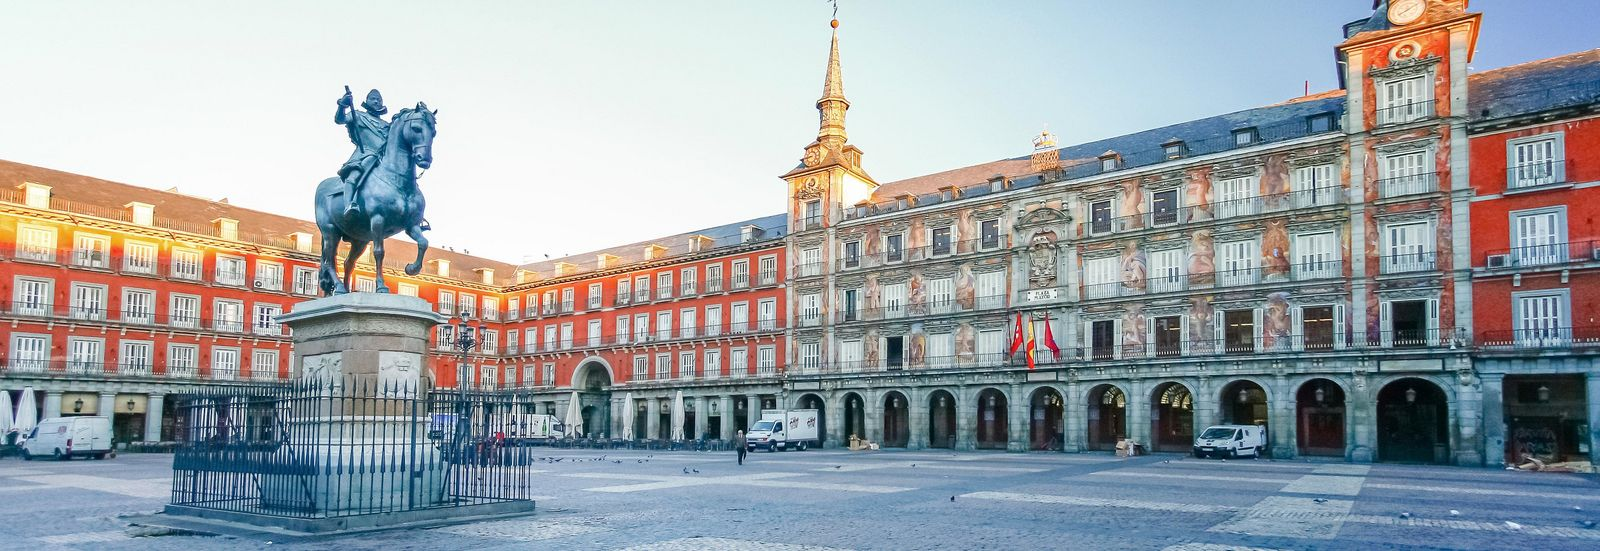 Madrid Spanien Plaza Mayor